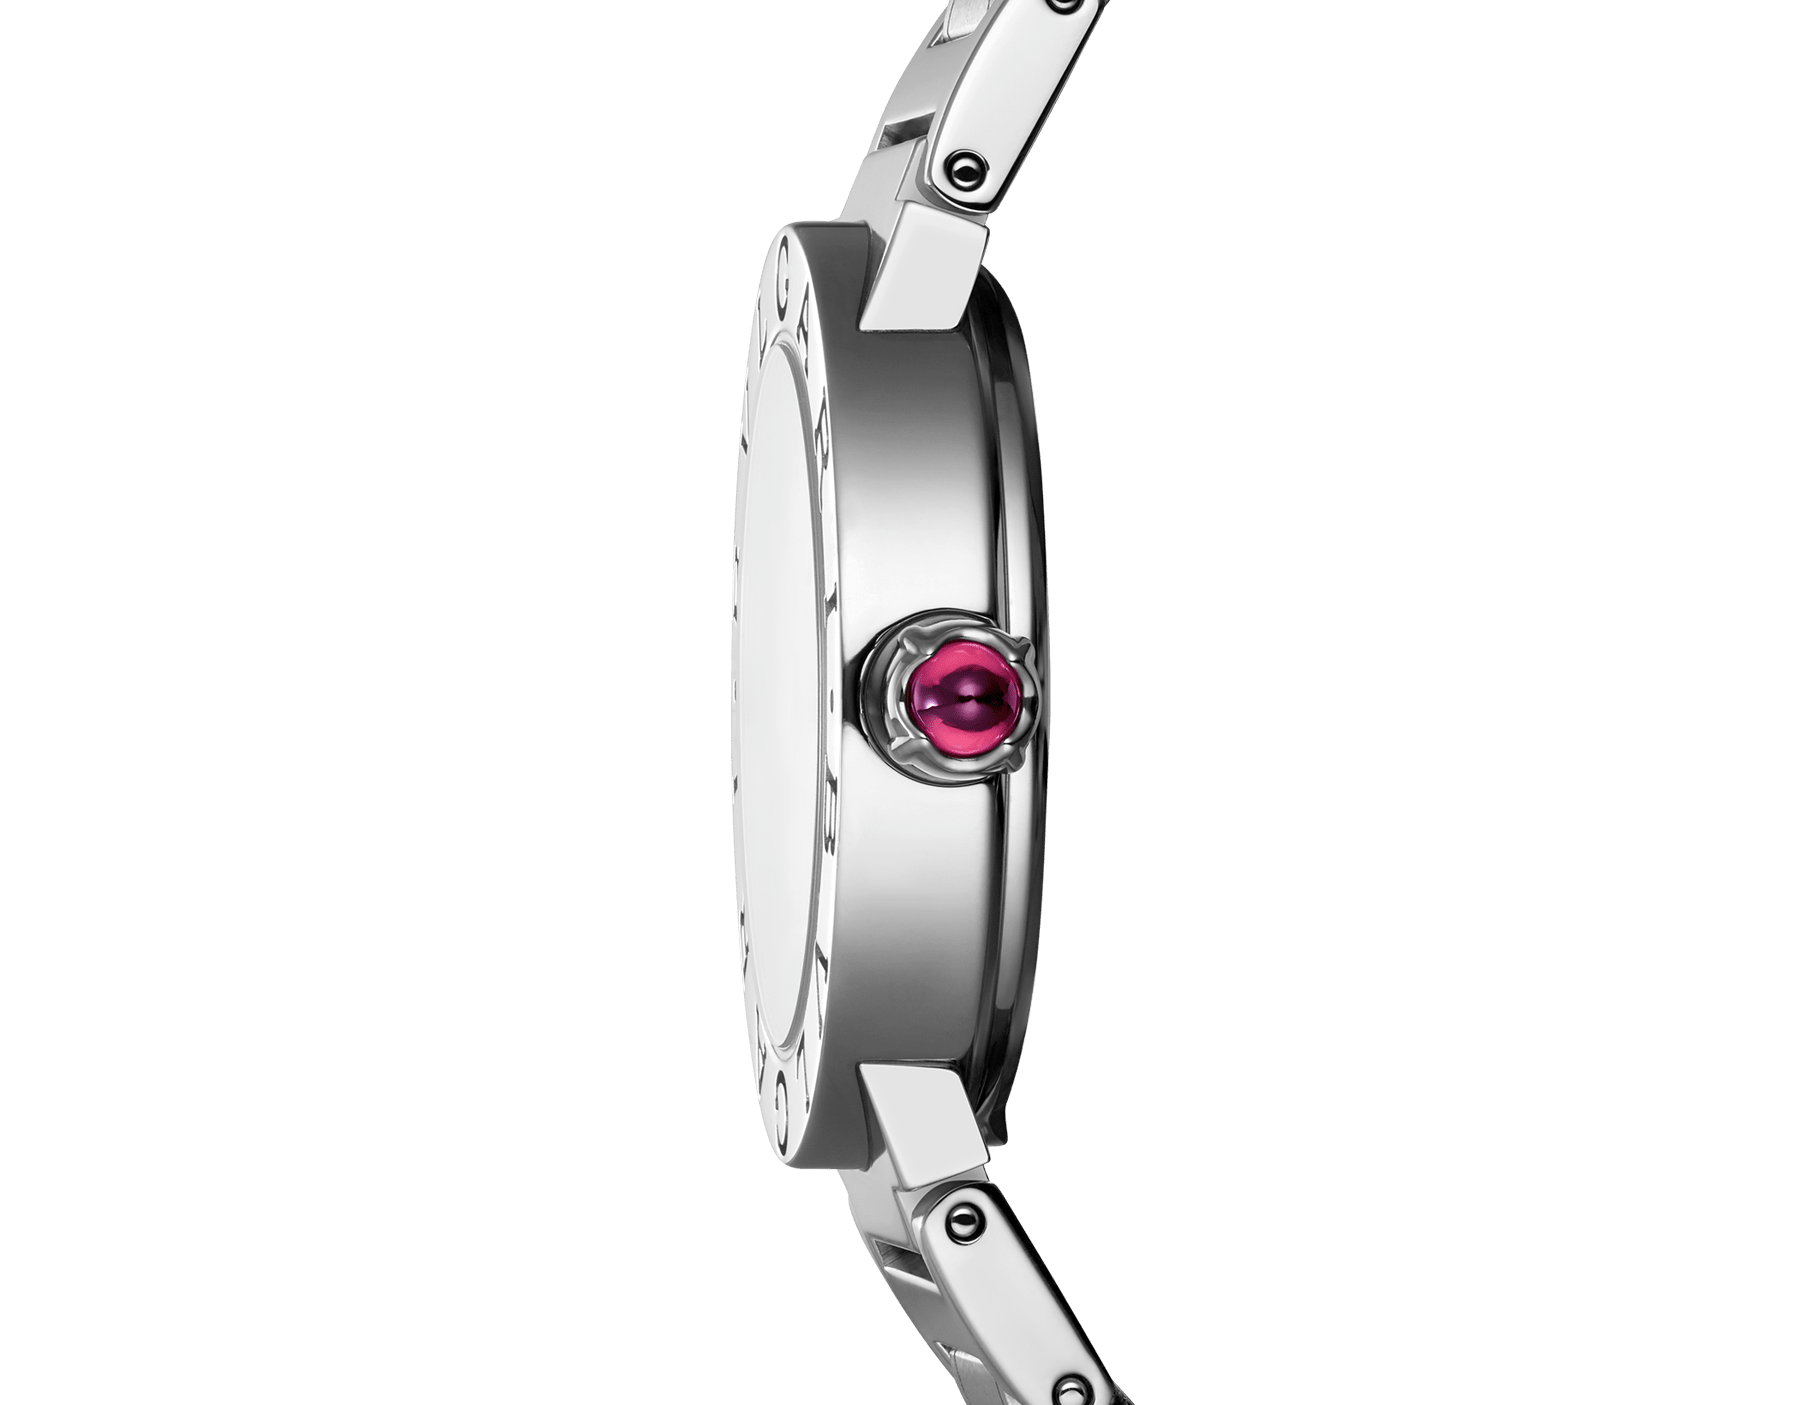 BVLGARI BVLGARI watch in stainless steel case and bracelet with white mother-of-pearl dial and date indication. Small model 101885 image 3